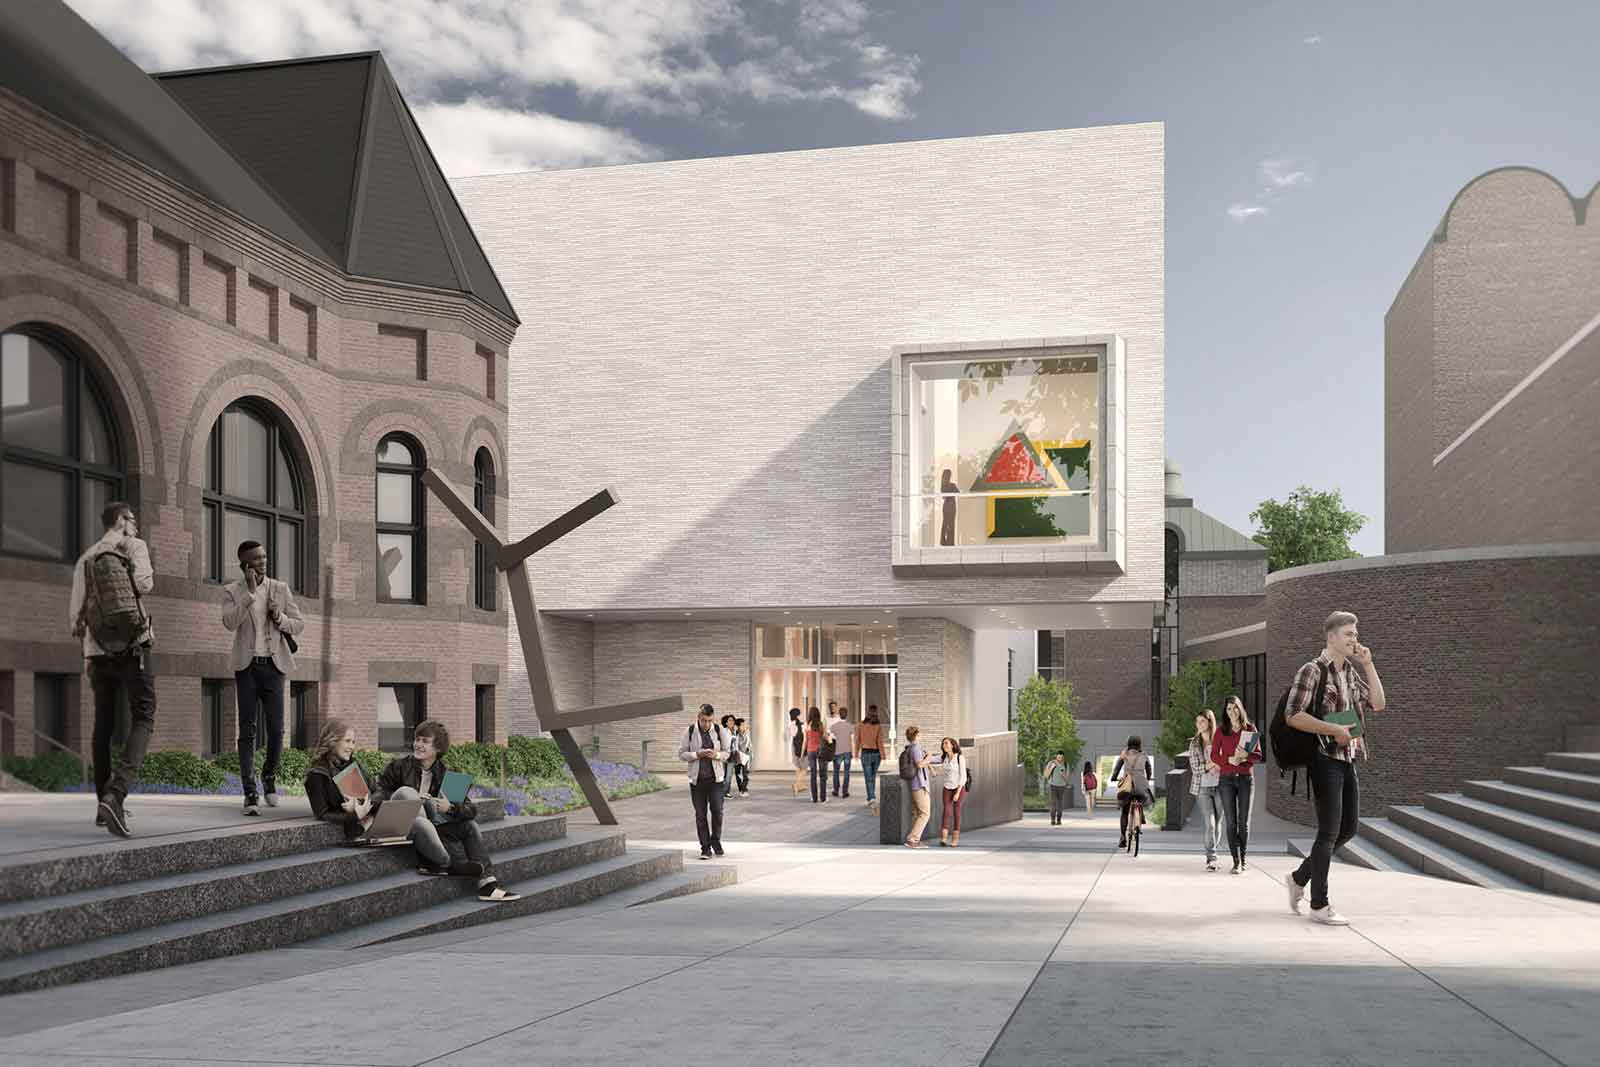 11 new museums opening in 2019: Hood Museum new extension